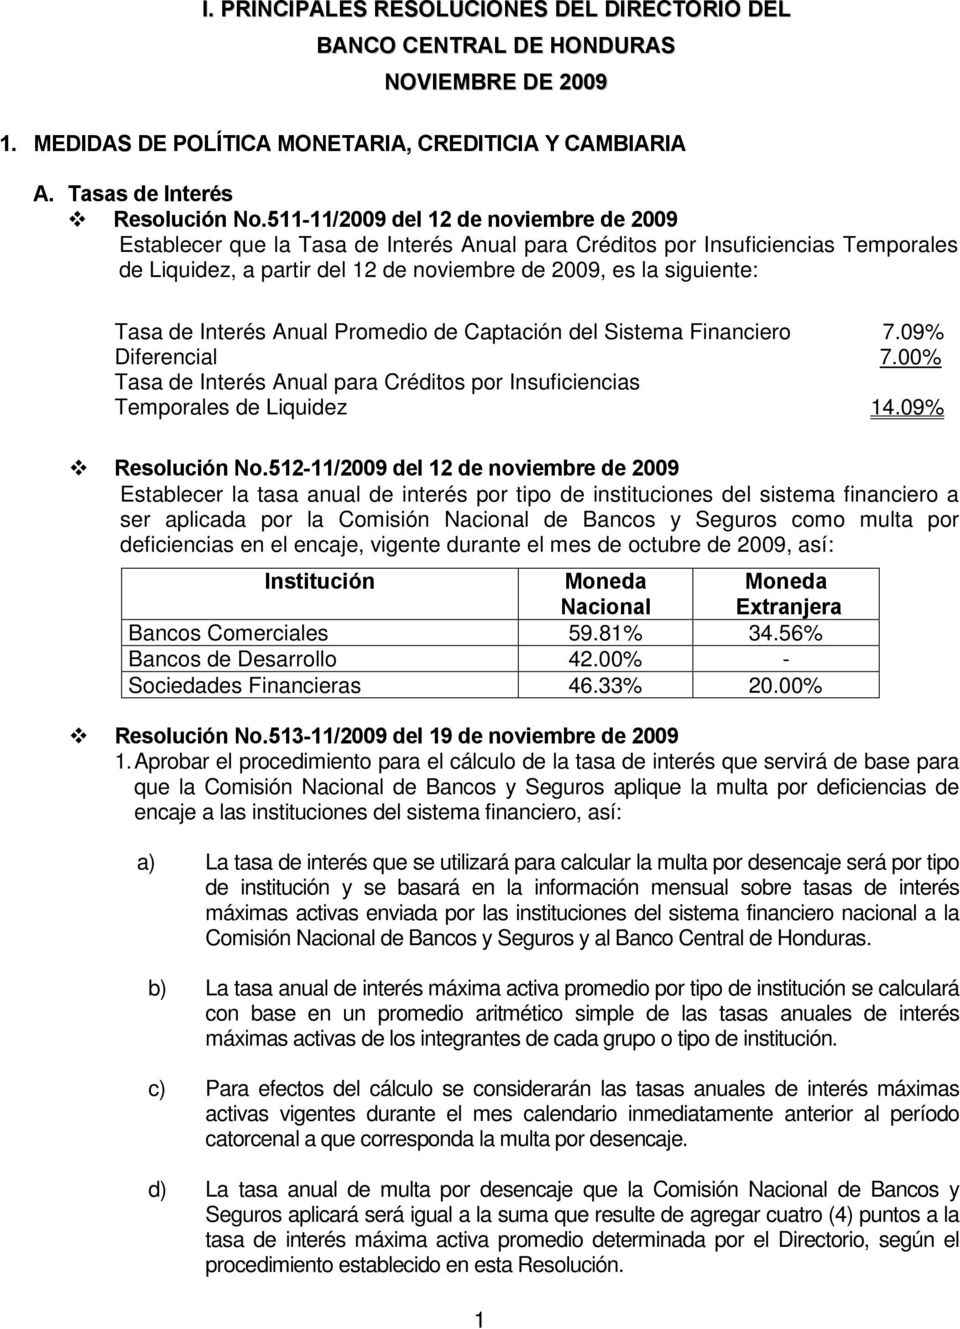 Interés Anual Promedio de Captación del Sistema Financiero 7.09% Diferencial 7.00% Tasa de Interés Anual para Créditos por Insuficiencias Temporales de Liquidez 14.09% Resolución No.